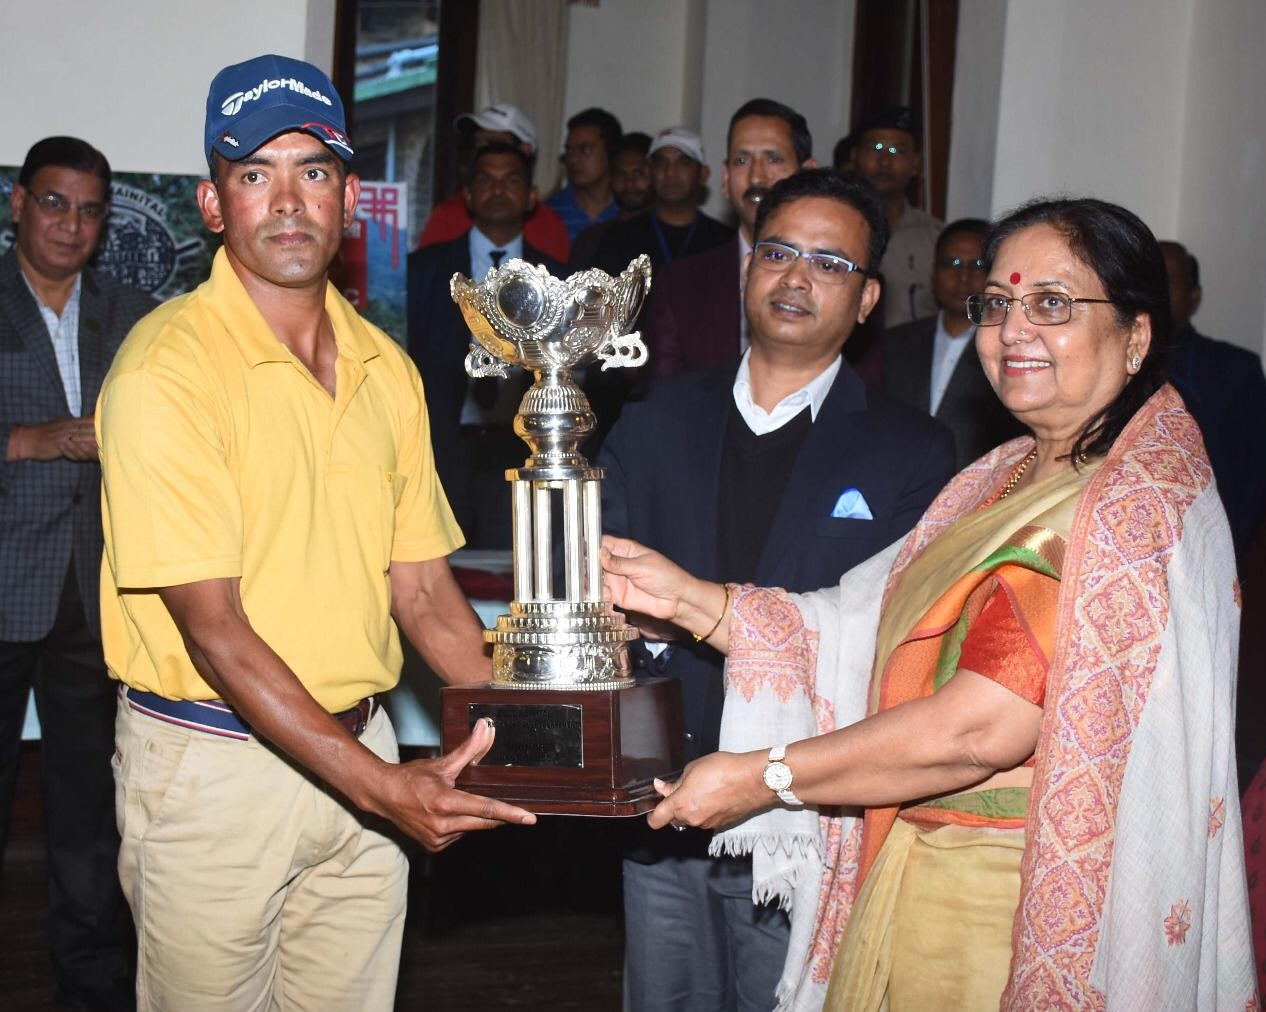 Nainital: 3-day Governor's Golf Cup comes to an end